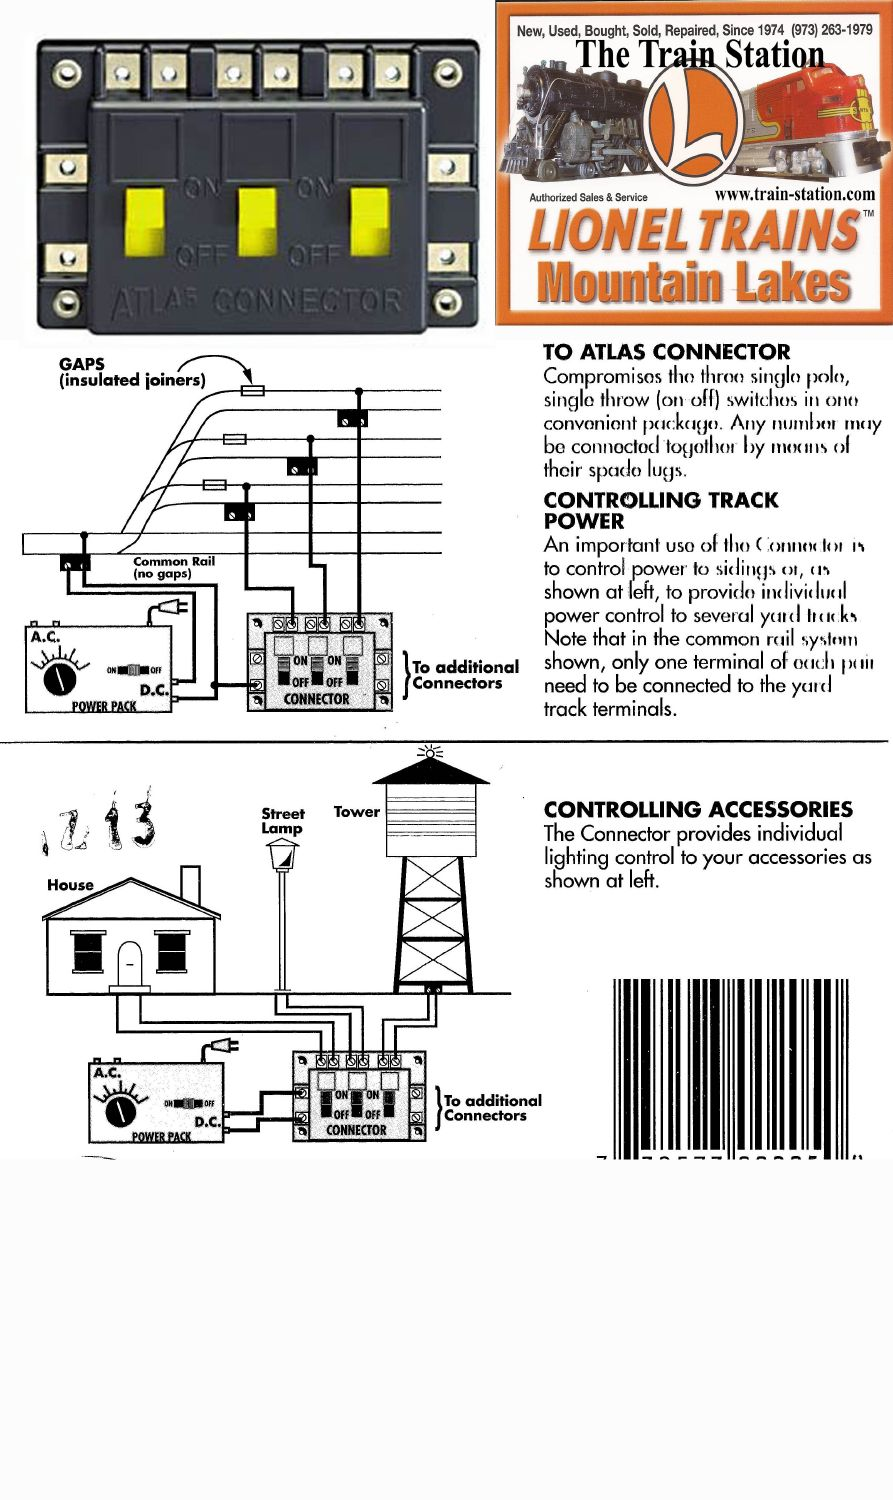 hight resolution of atlas connectors great for wiring any layout see detailed atlas copco wiring diagram atlas connectors